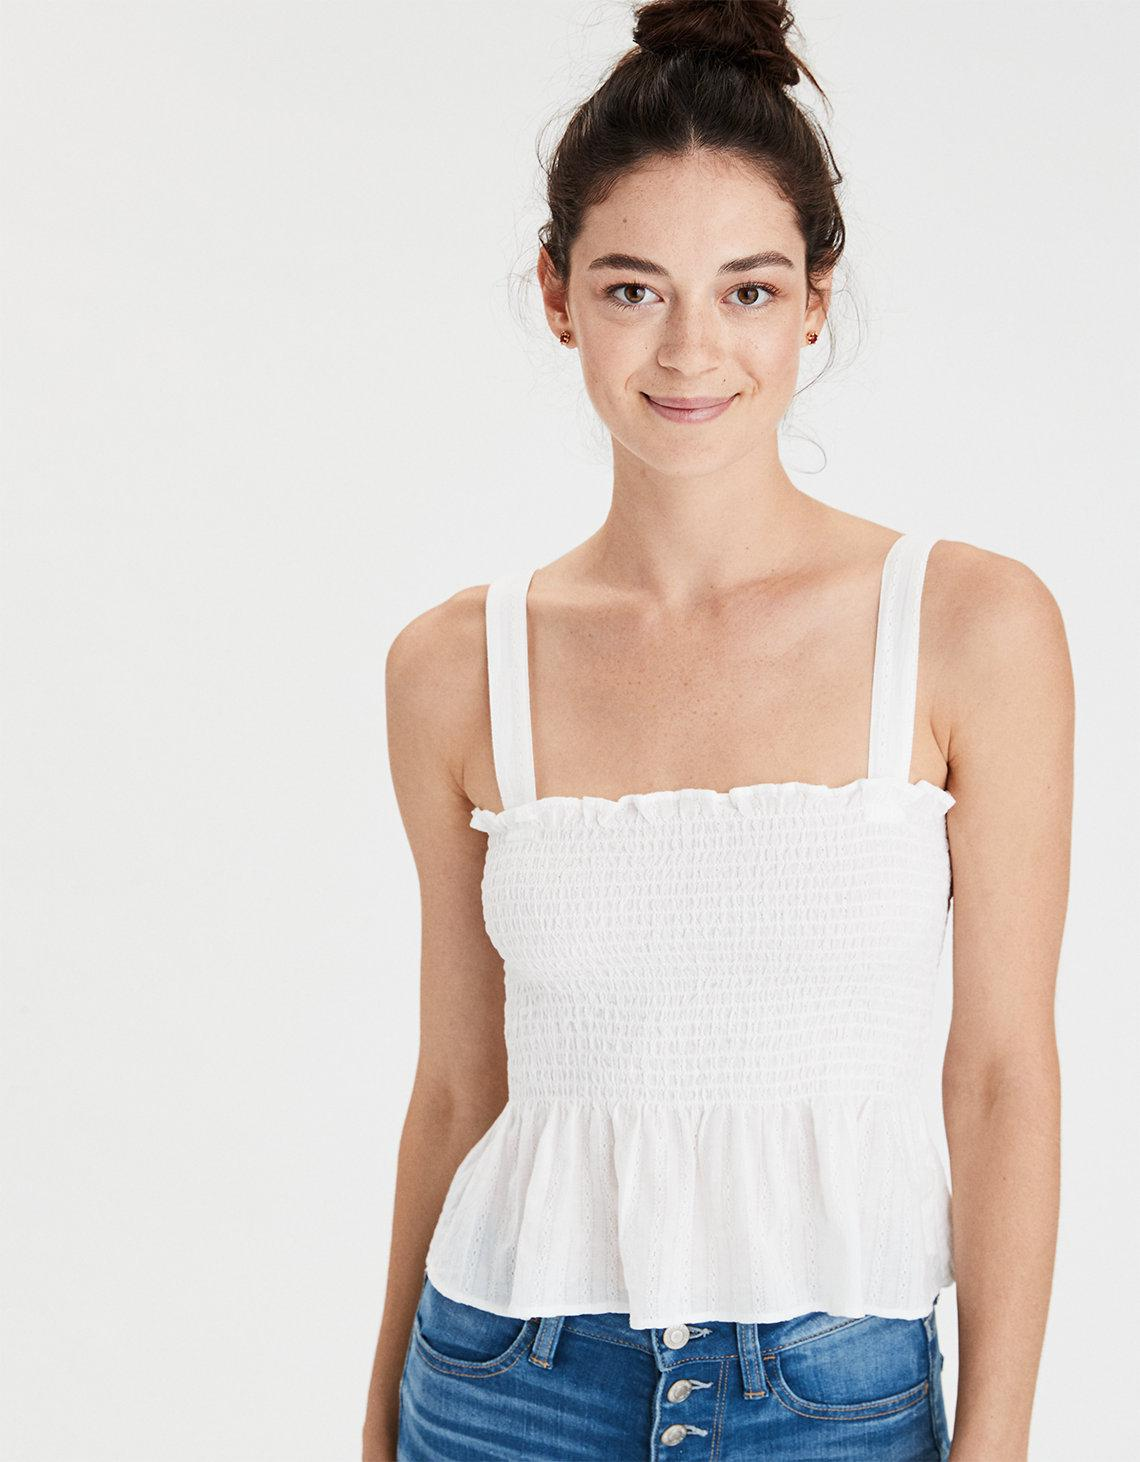 37fcff8f15 Lyst - American Eagle Ae Smocked Camisole in White